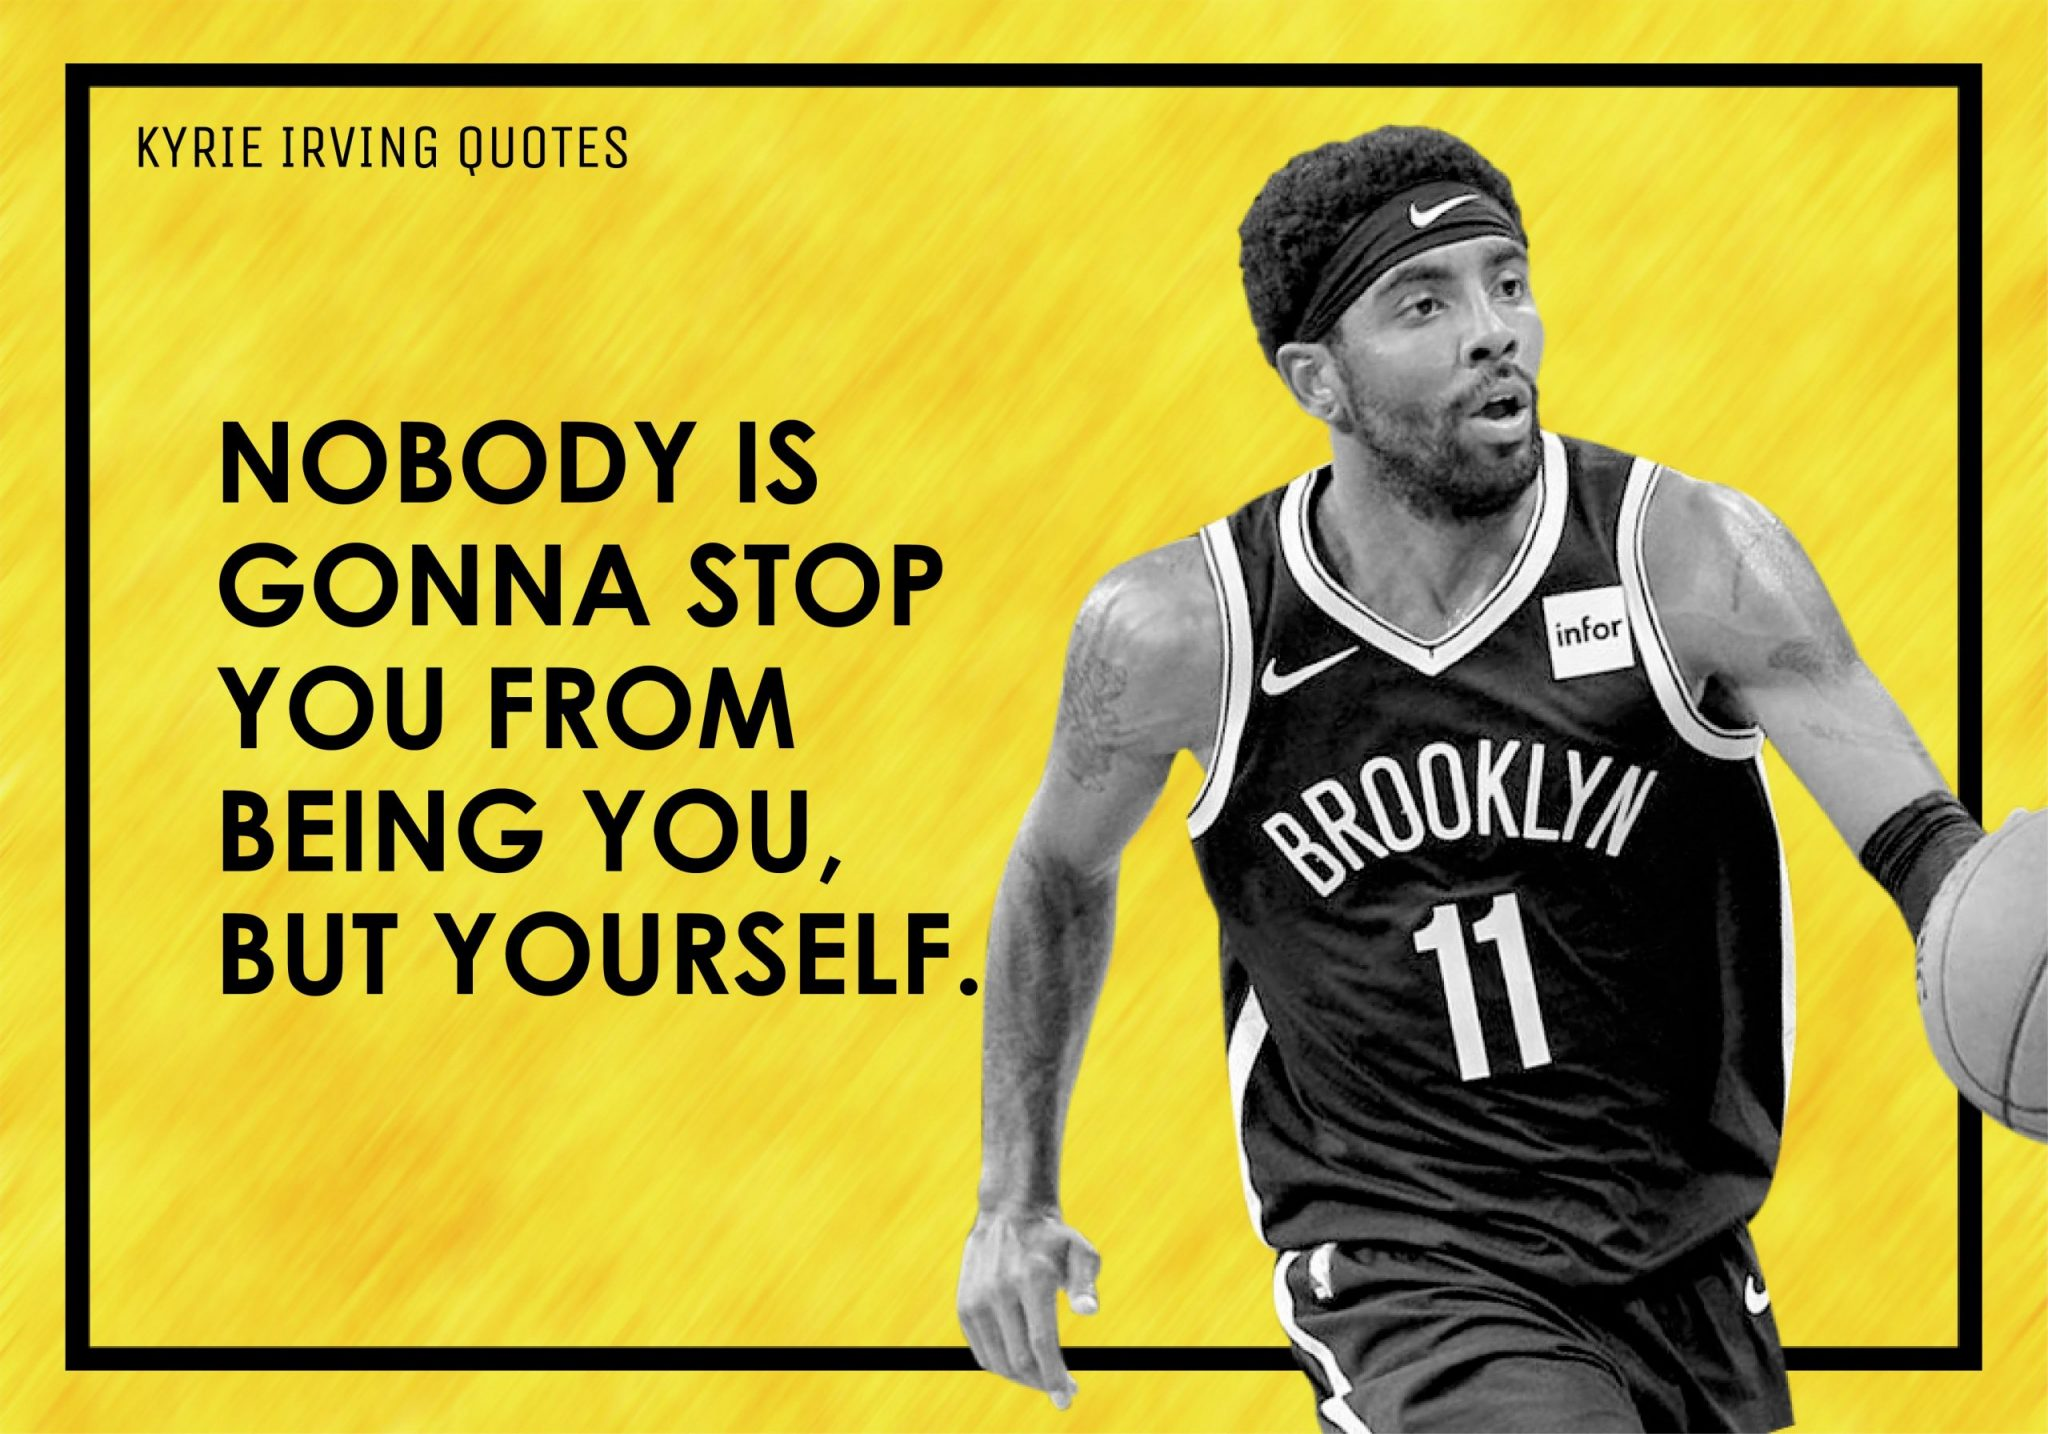 Kyrie Irving Quotes (10)